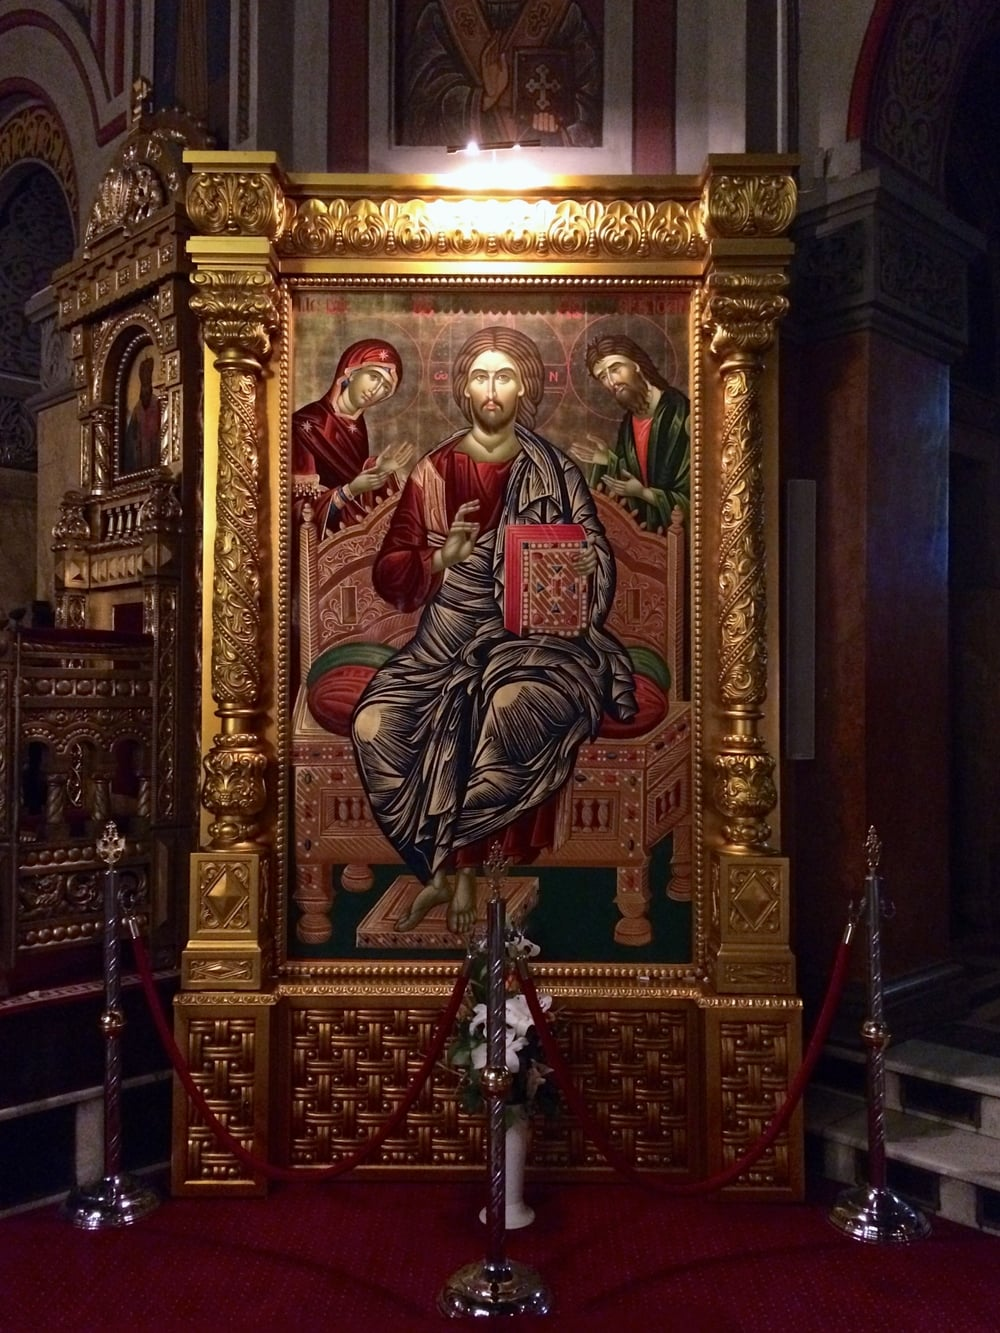 Striking detail in the picture and the frame. Also, Jesus' chair looks like it's probably super comfortable.